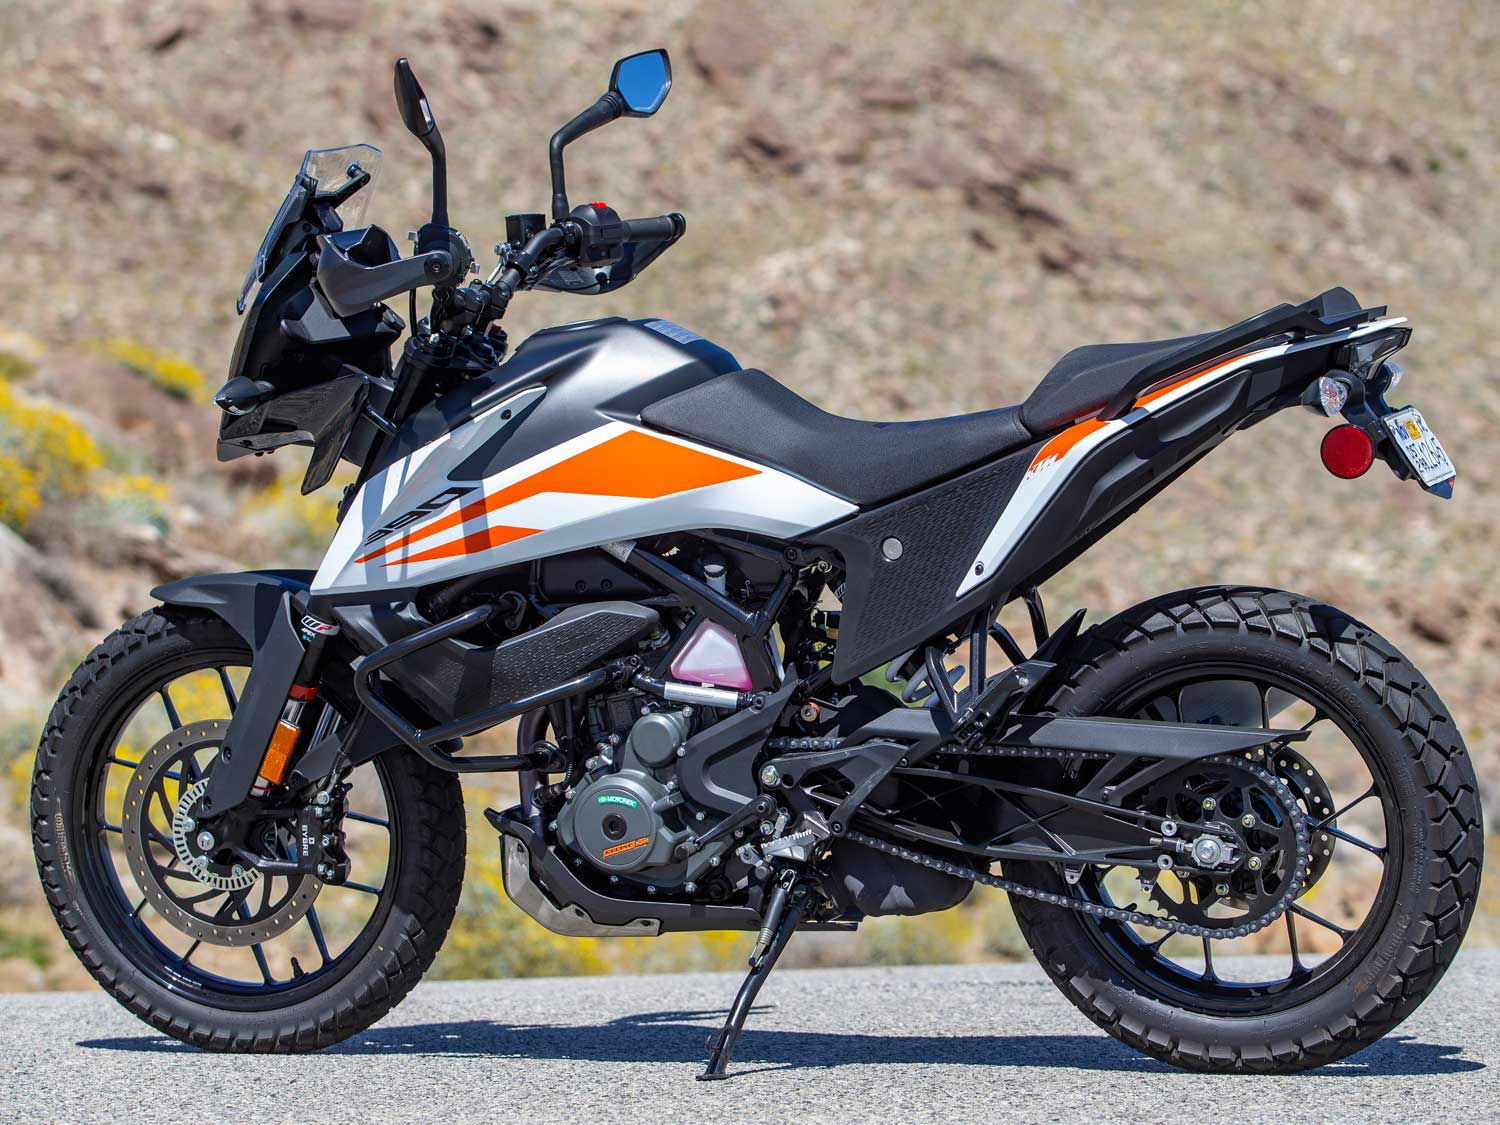 The 390 Adventure looks like a carbon copy of its 790 Adventure big brother.